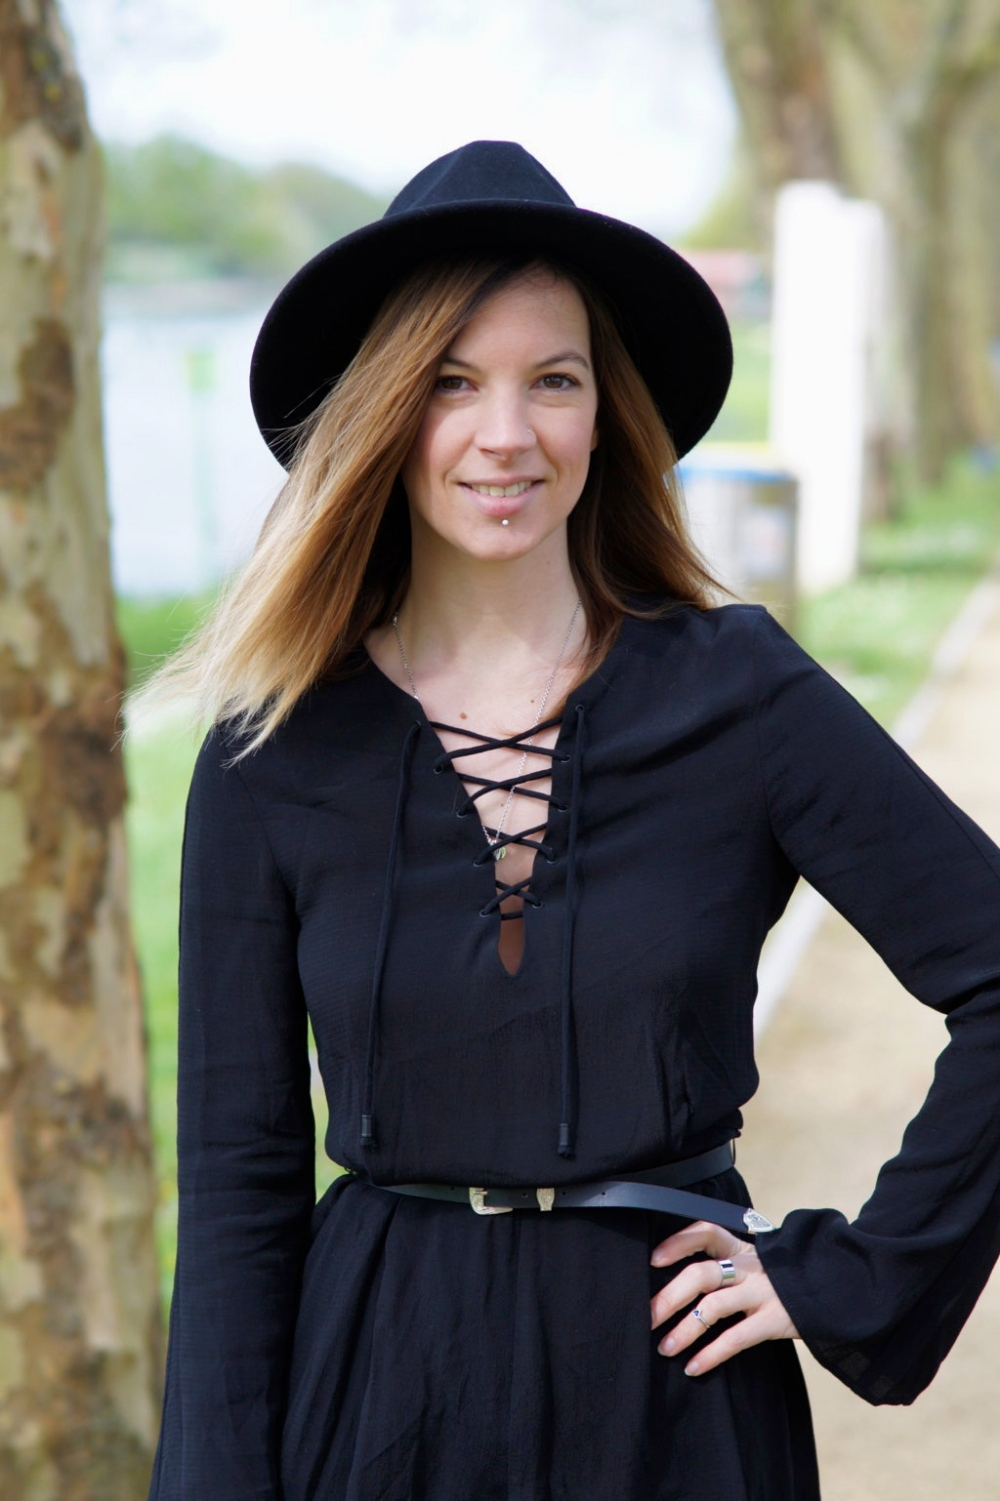 DSC02493 (FILEminimizer)